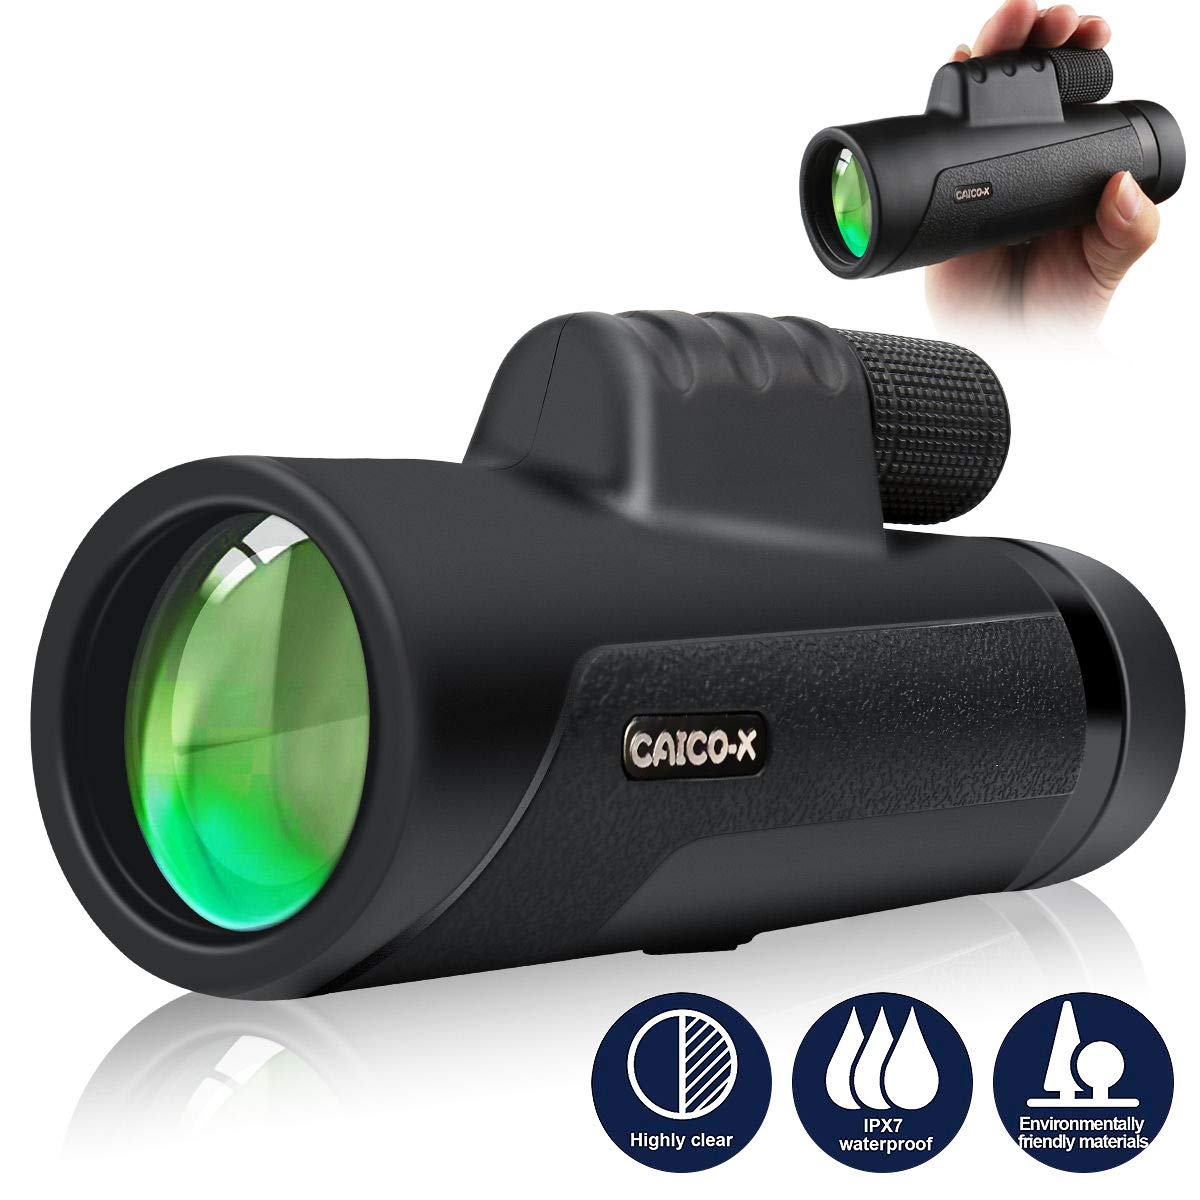 12×50 Monocular Telescope, CAICO-X High Power HD Monocular with Smartphone Holder and Tripod for Watching Bird, Hiking, Hunting, Camping